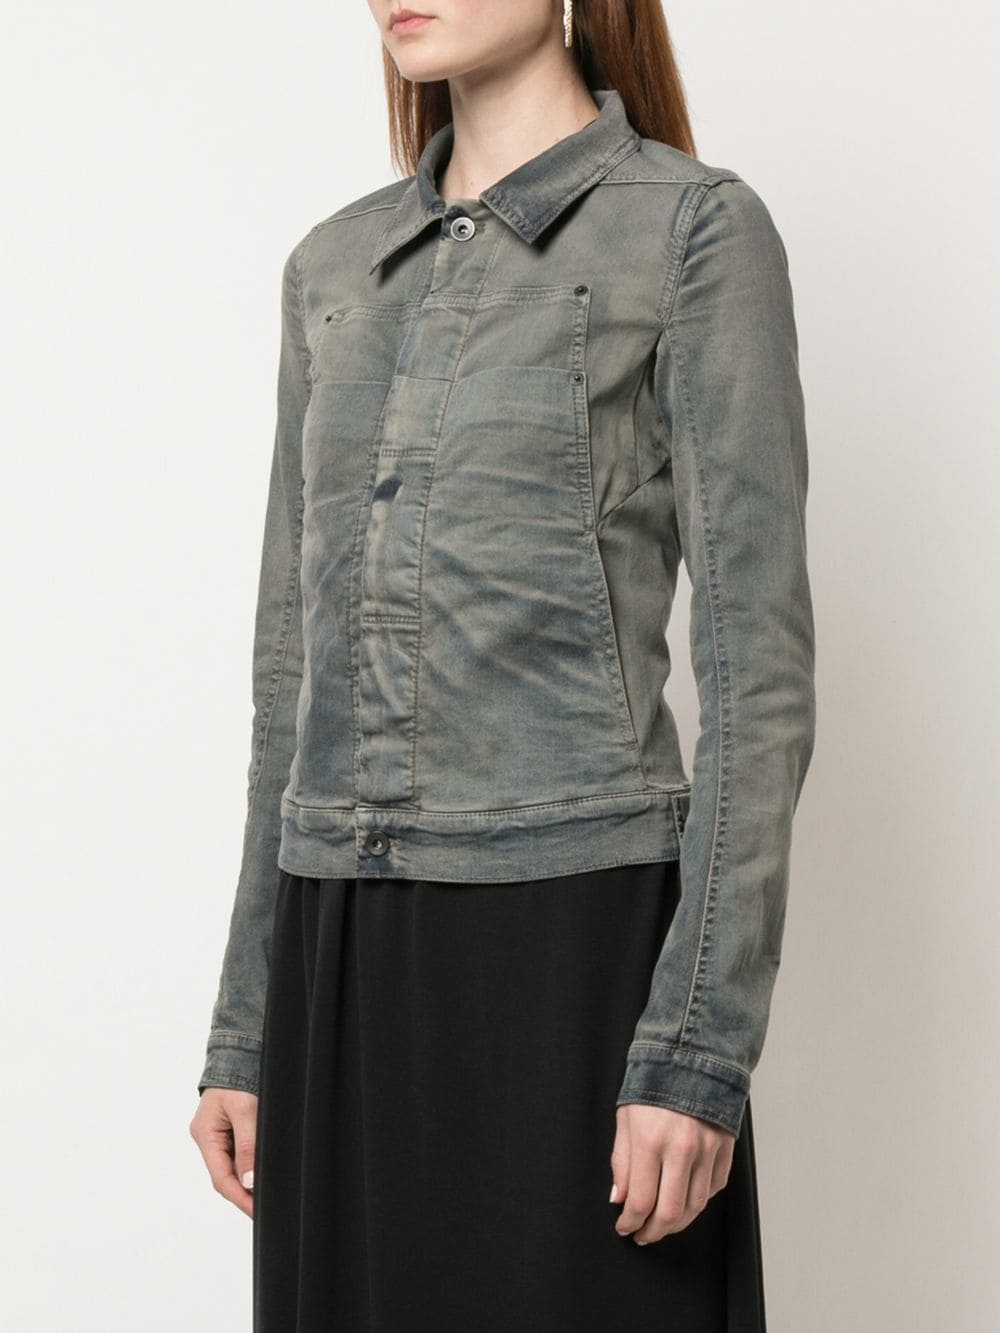 RICK OWENS DRKSHDW WOMEN LAB JACKET